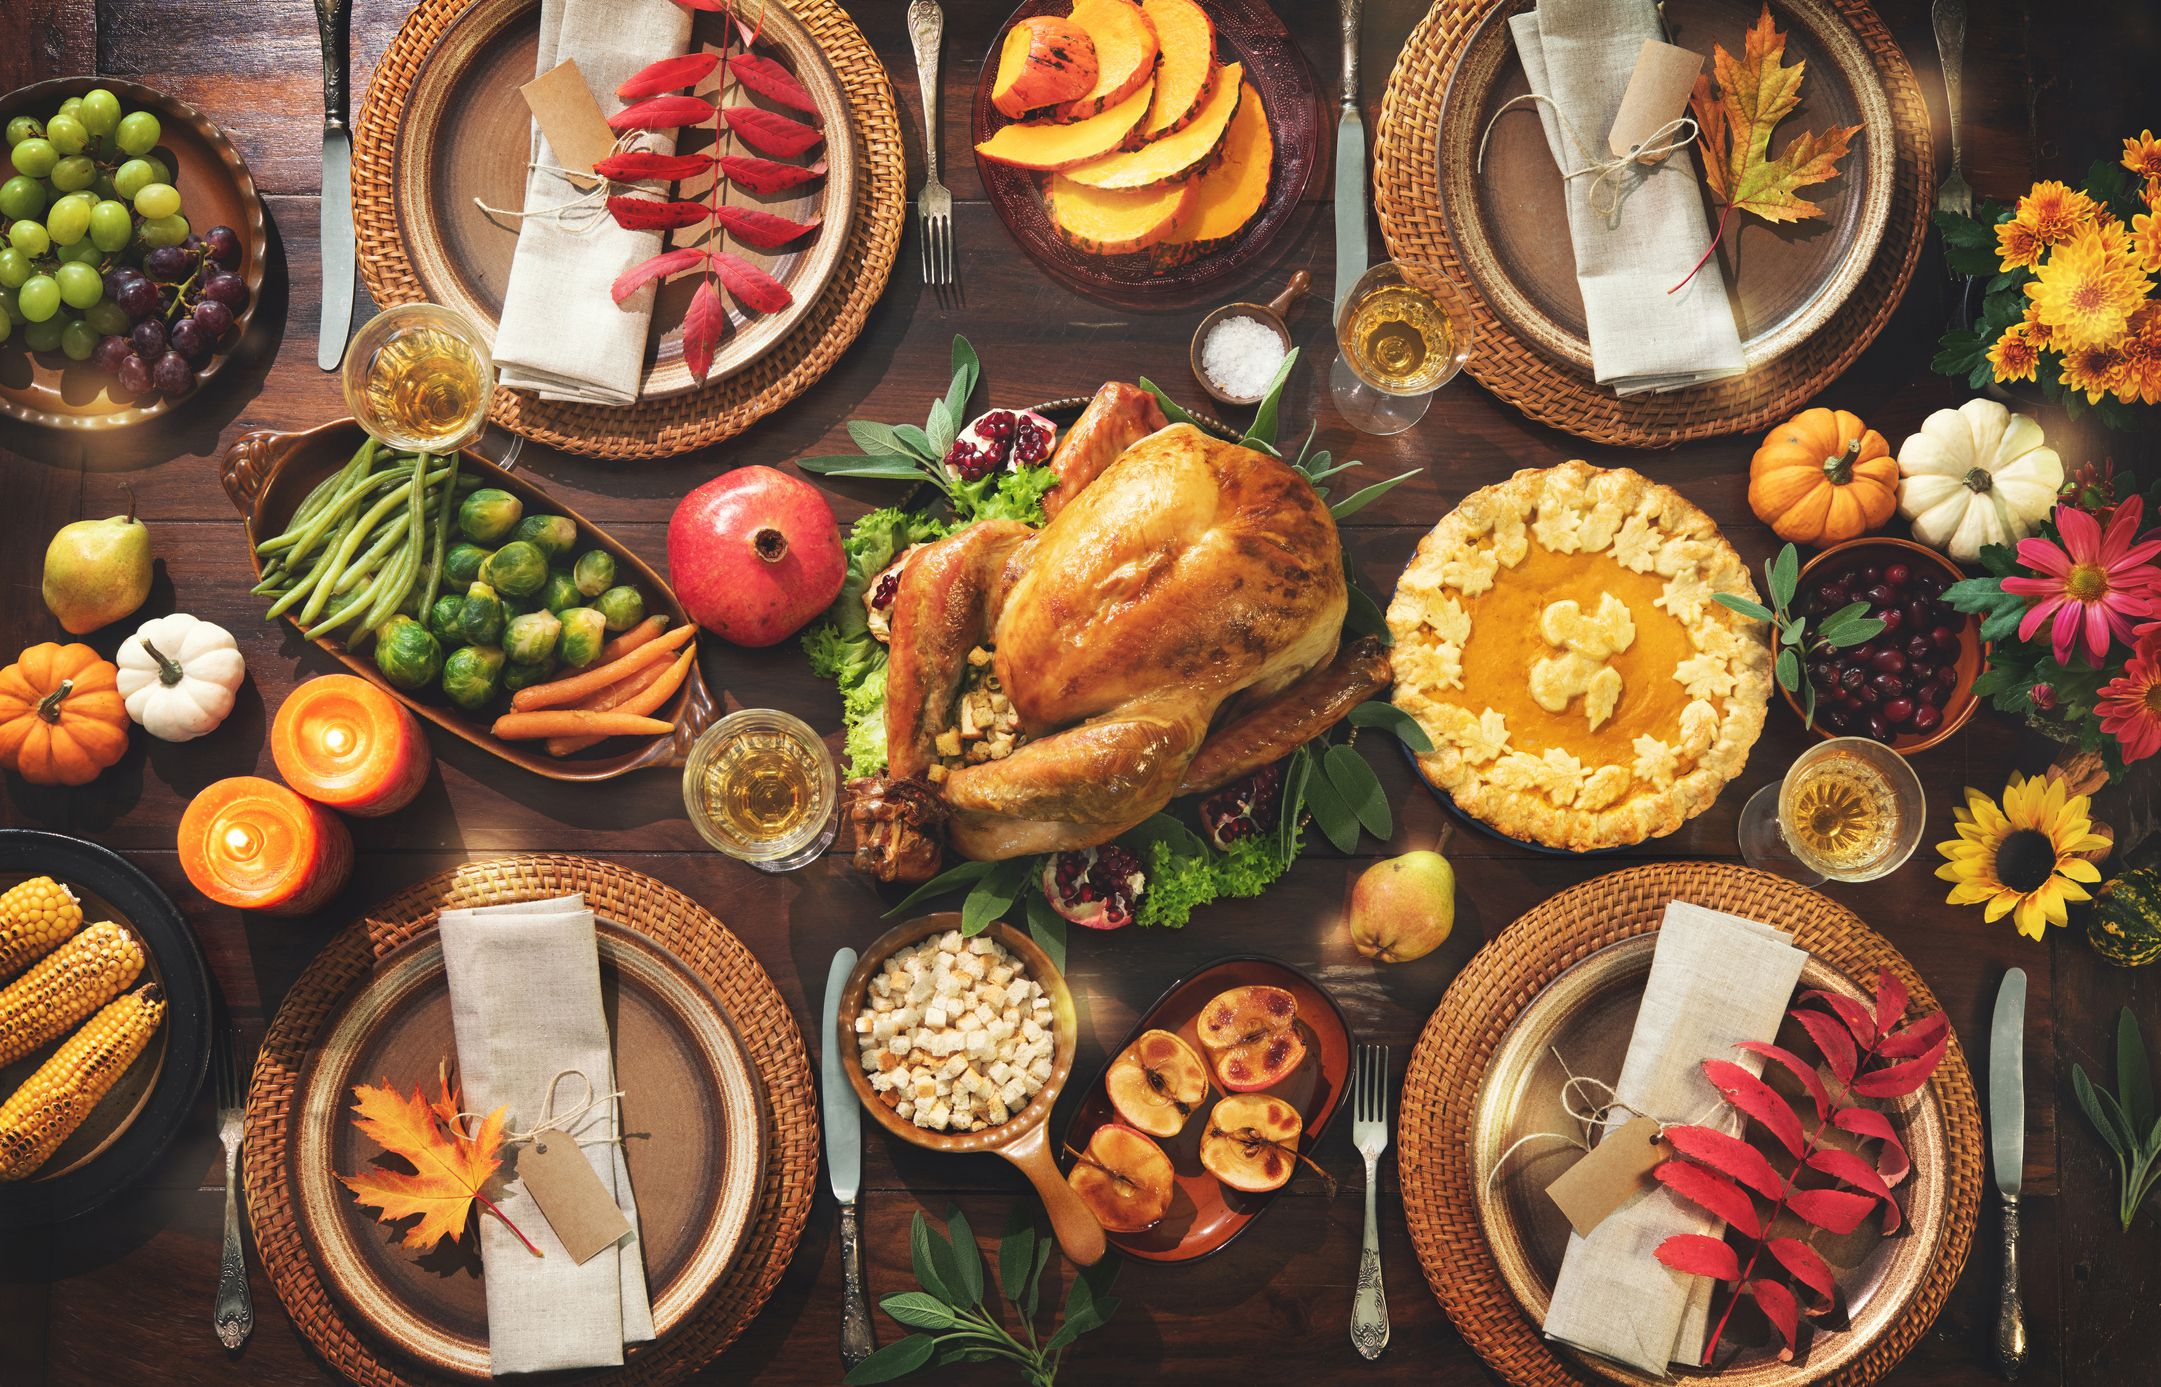 Here S What To Bring For Thanksgiving Dinner As A Guest